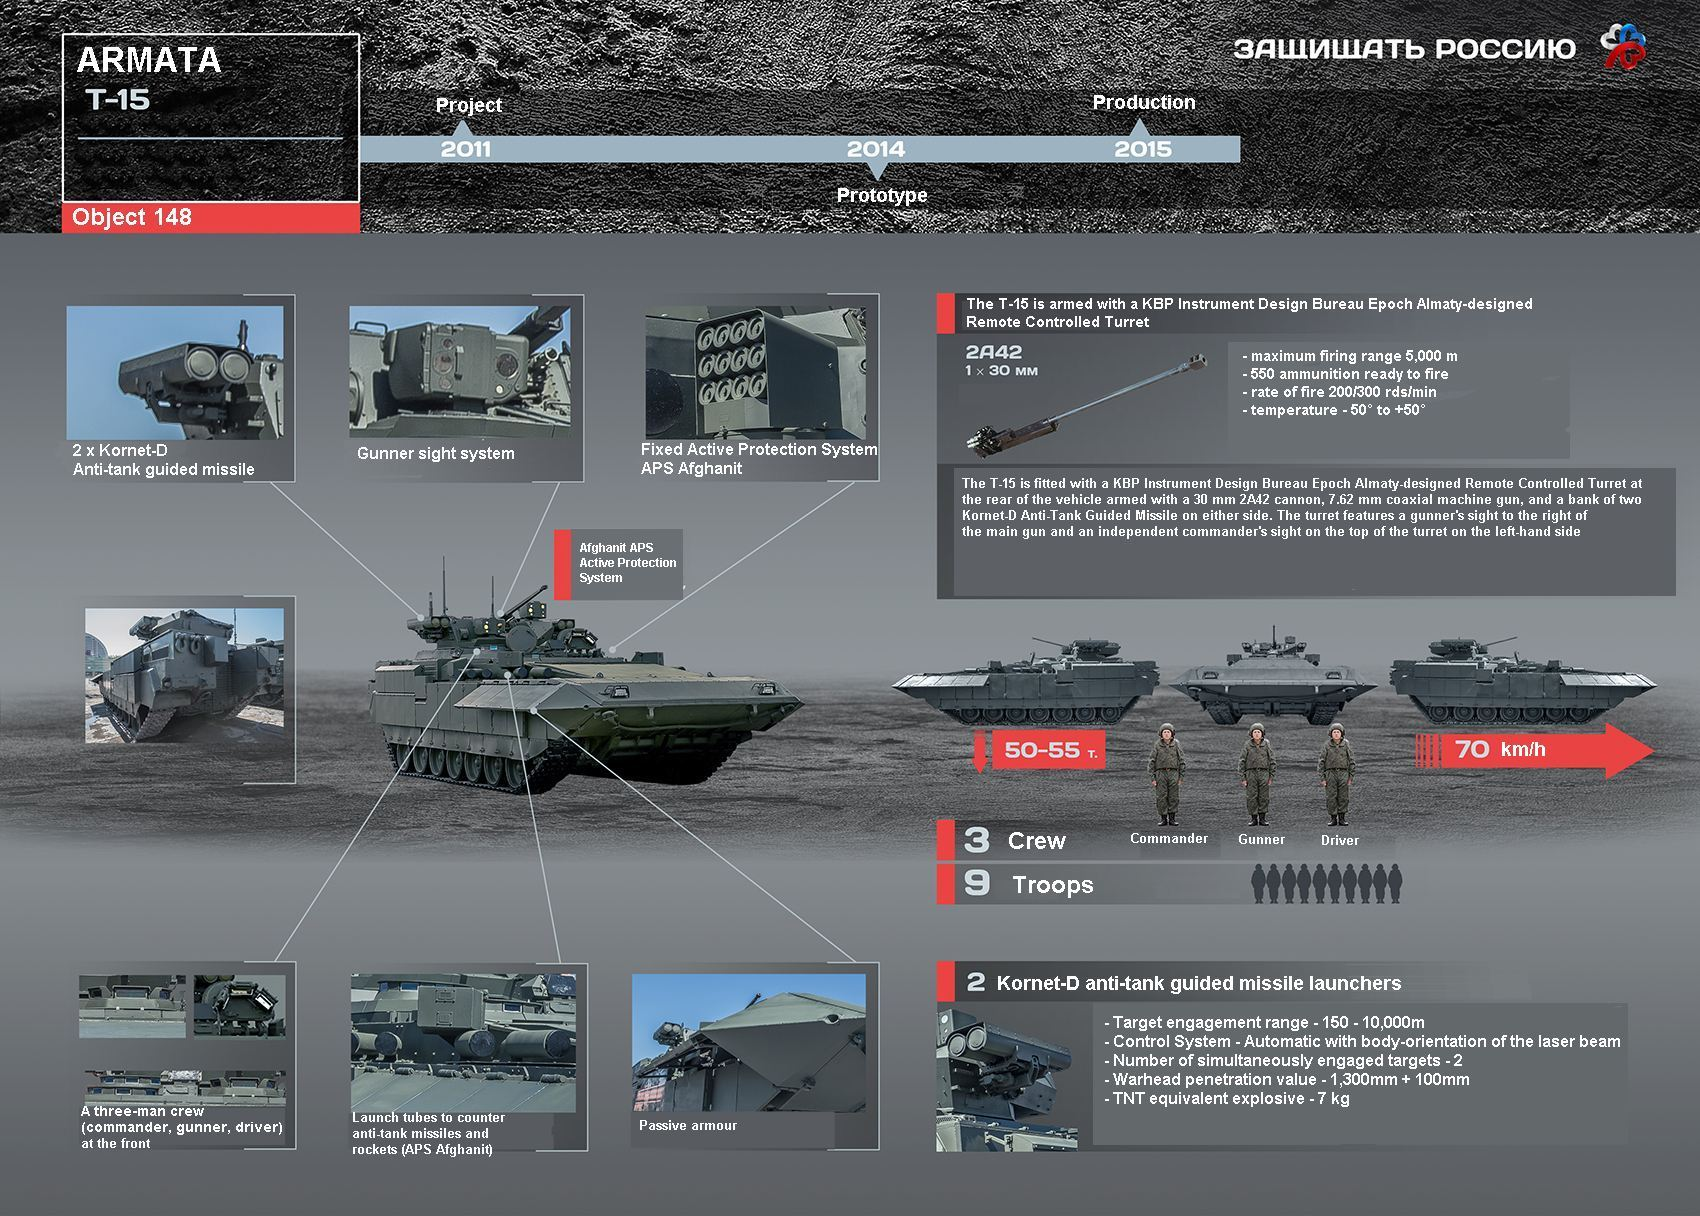 tracked vehicle with T 15   Armata Aifv Armoured Infantry Fighting Vehicle Technical Data Sheet Pictures Video on Wordart Generator Transports Your Text Back 90s moreover Equipment in addition Lego KV 2 574726455 additionally 1793 furthermore Summer 2017 Lego Technic Sets Unveiled Toy Fair New York 2017 News.